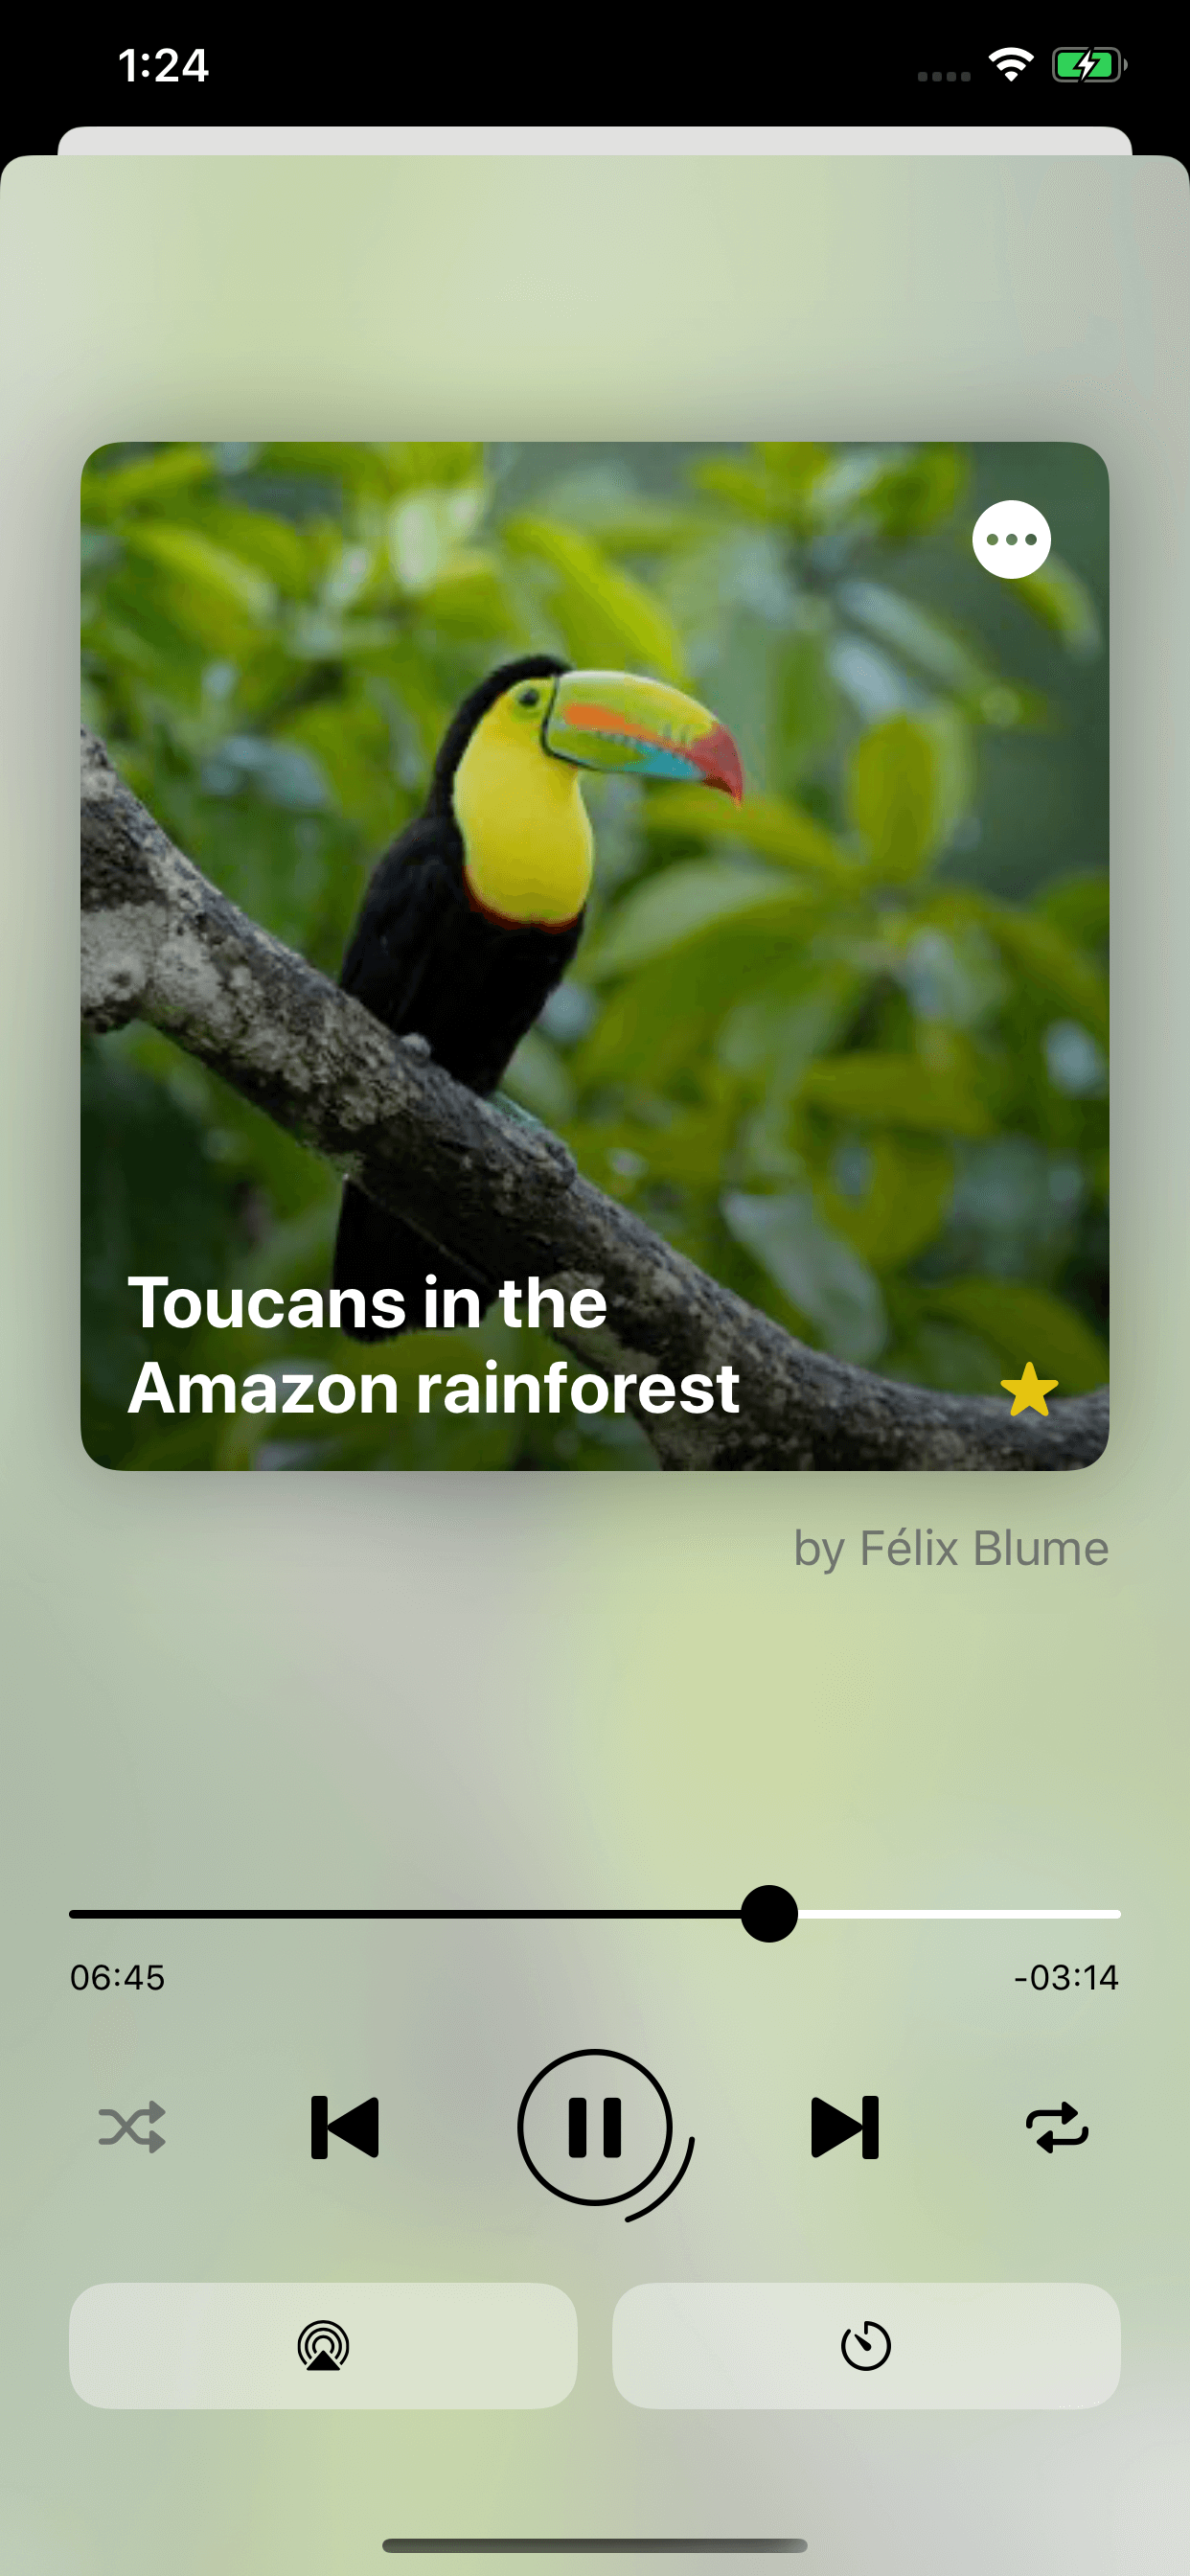 Soundscapes - A New Mobile App to Reconnect with Nature Image